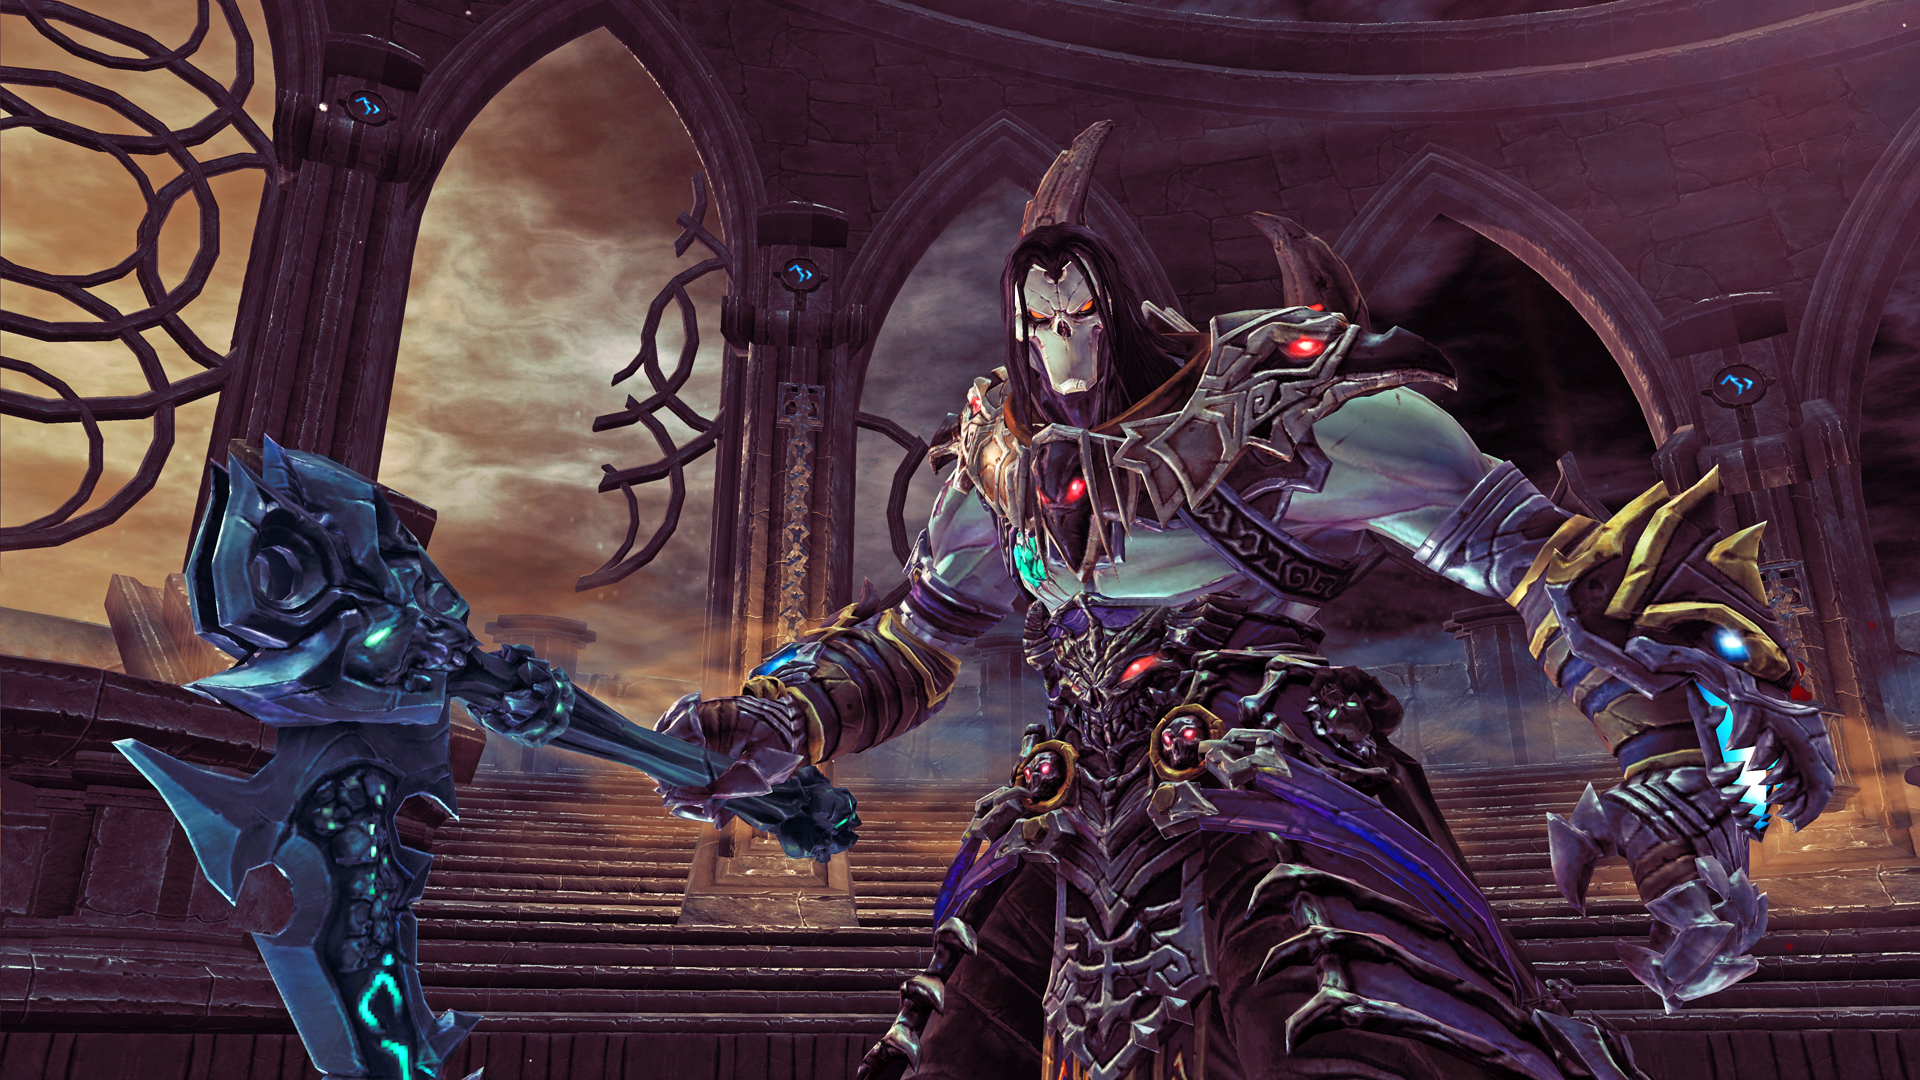 darksiders ii wii u review | gamesradar+